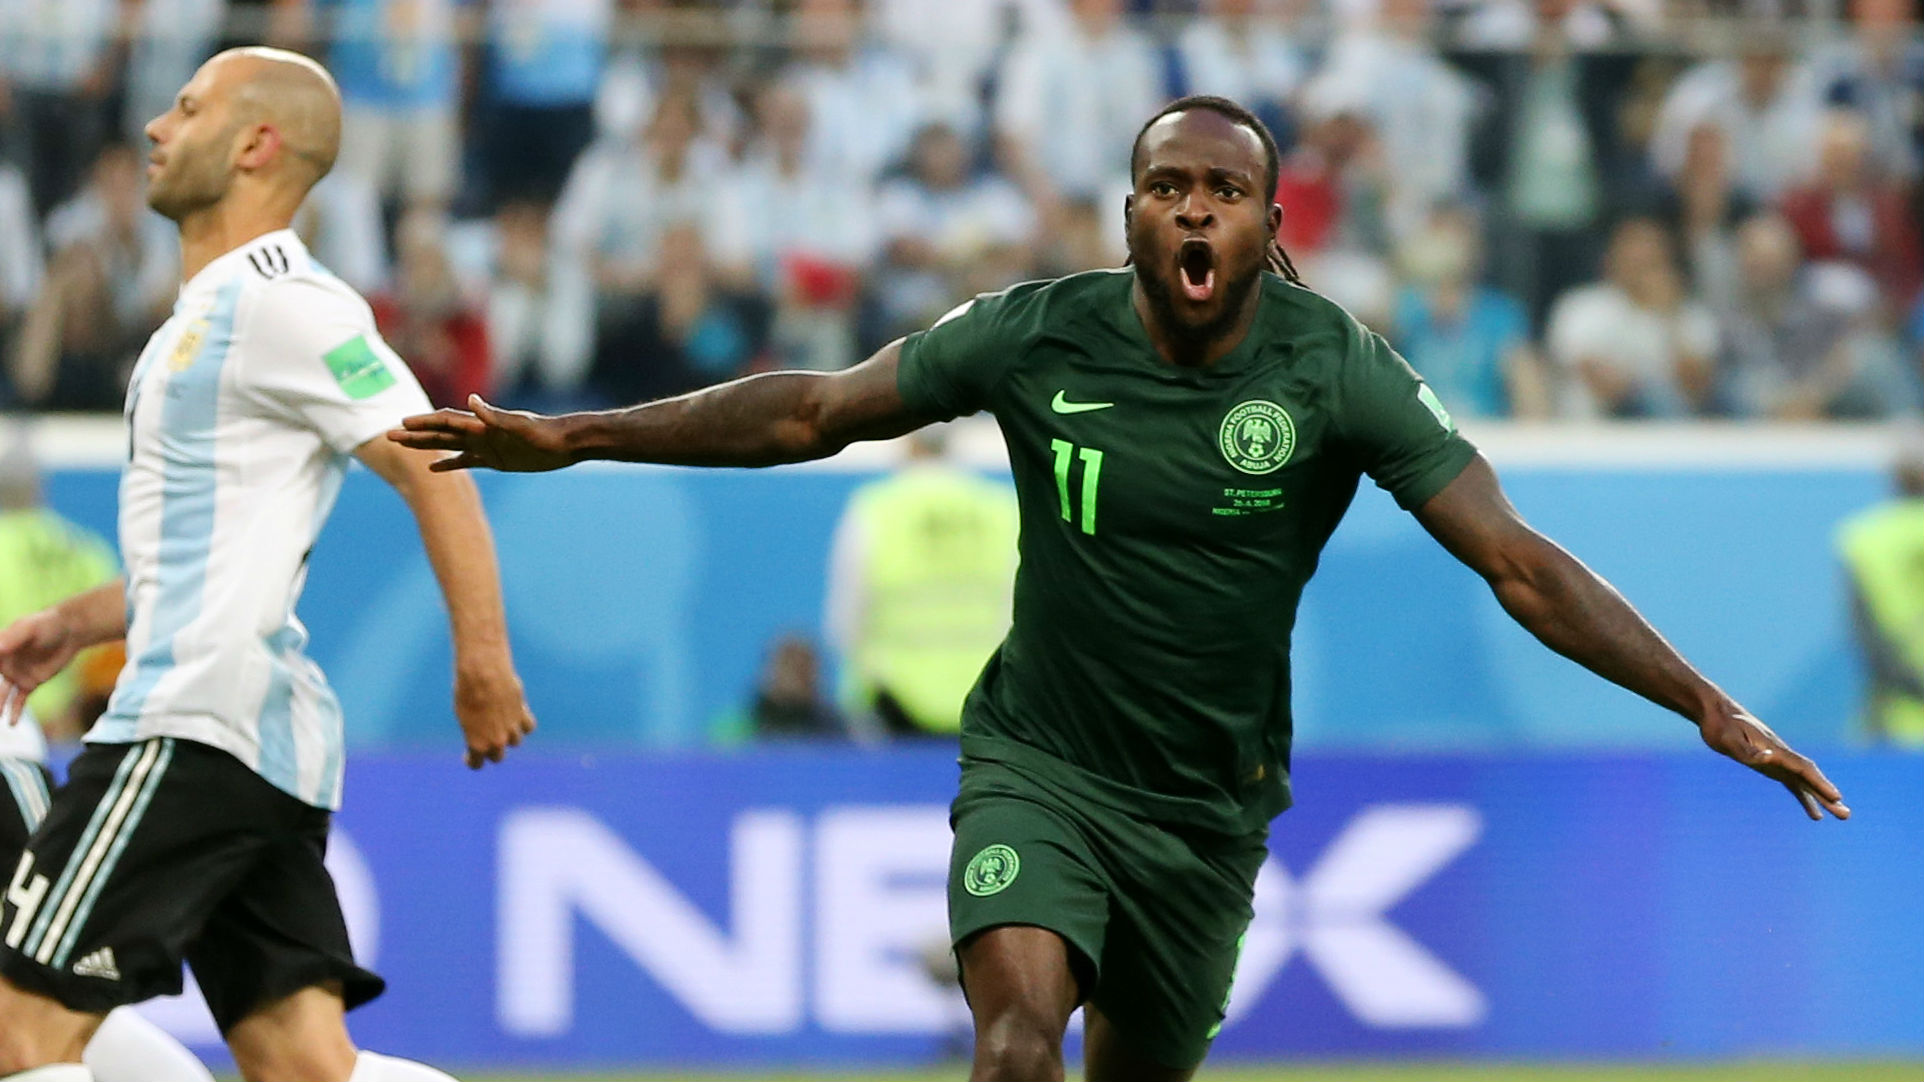 Chelsea's Victor Moses retires from international football